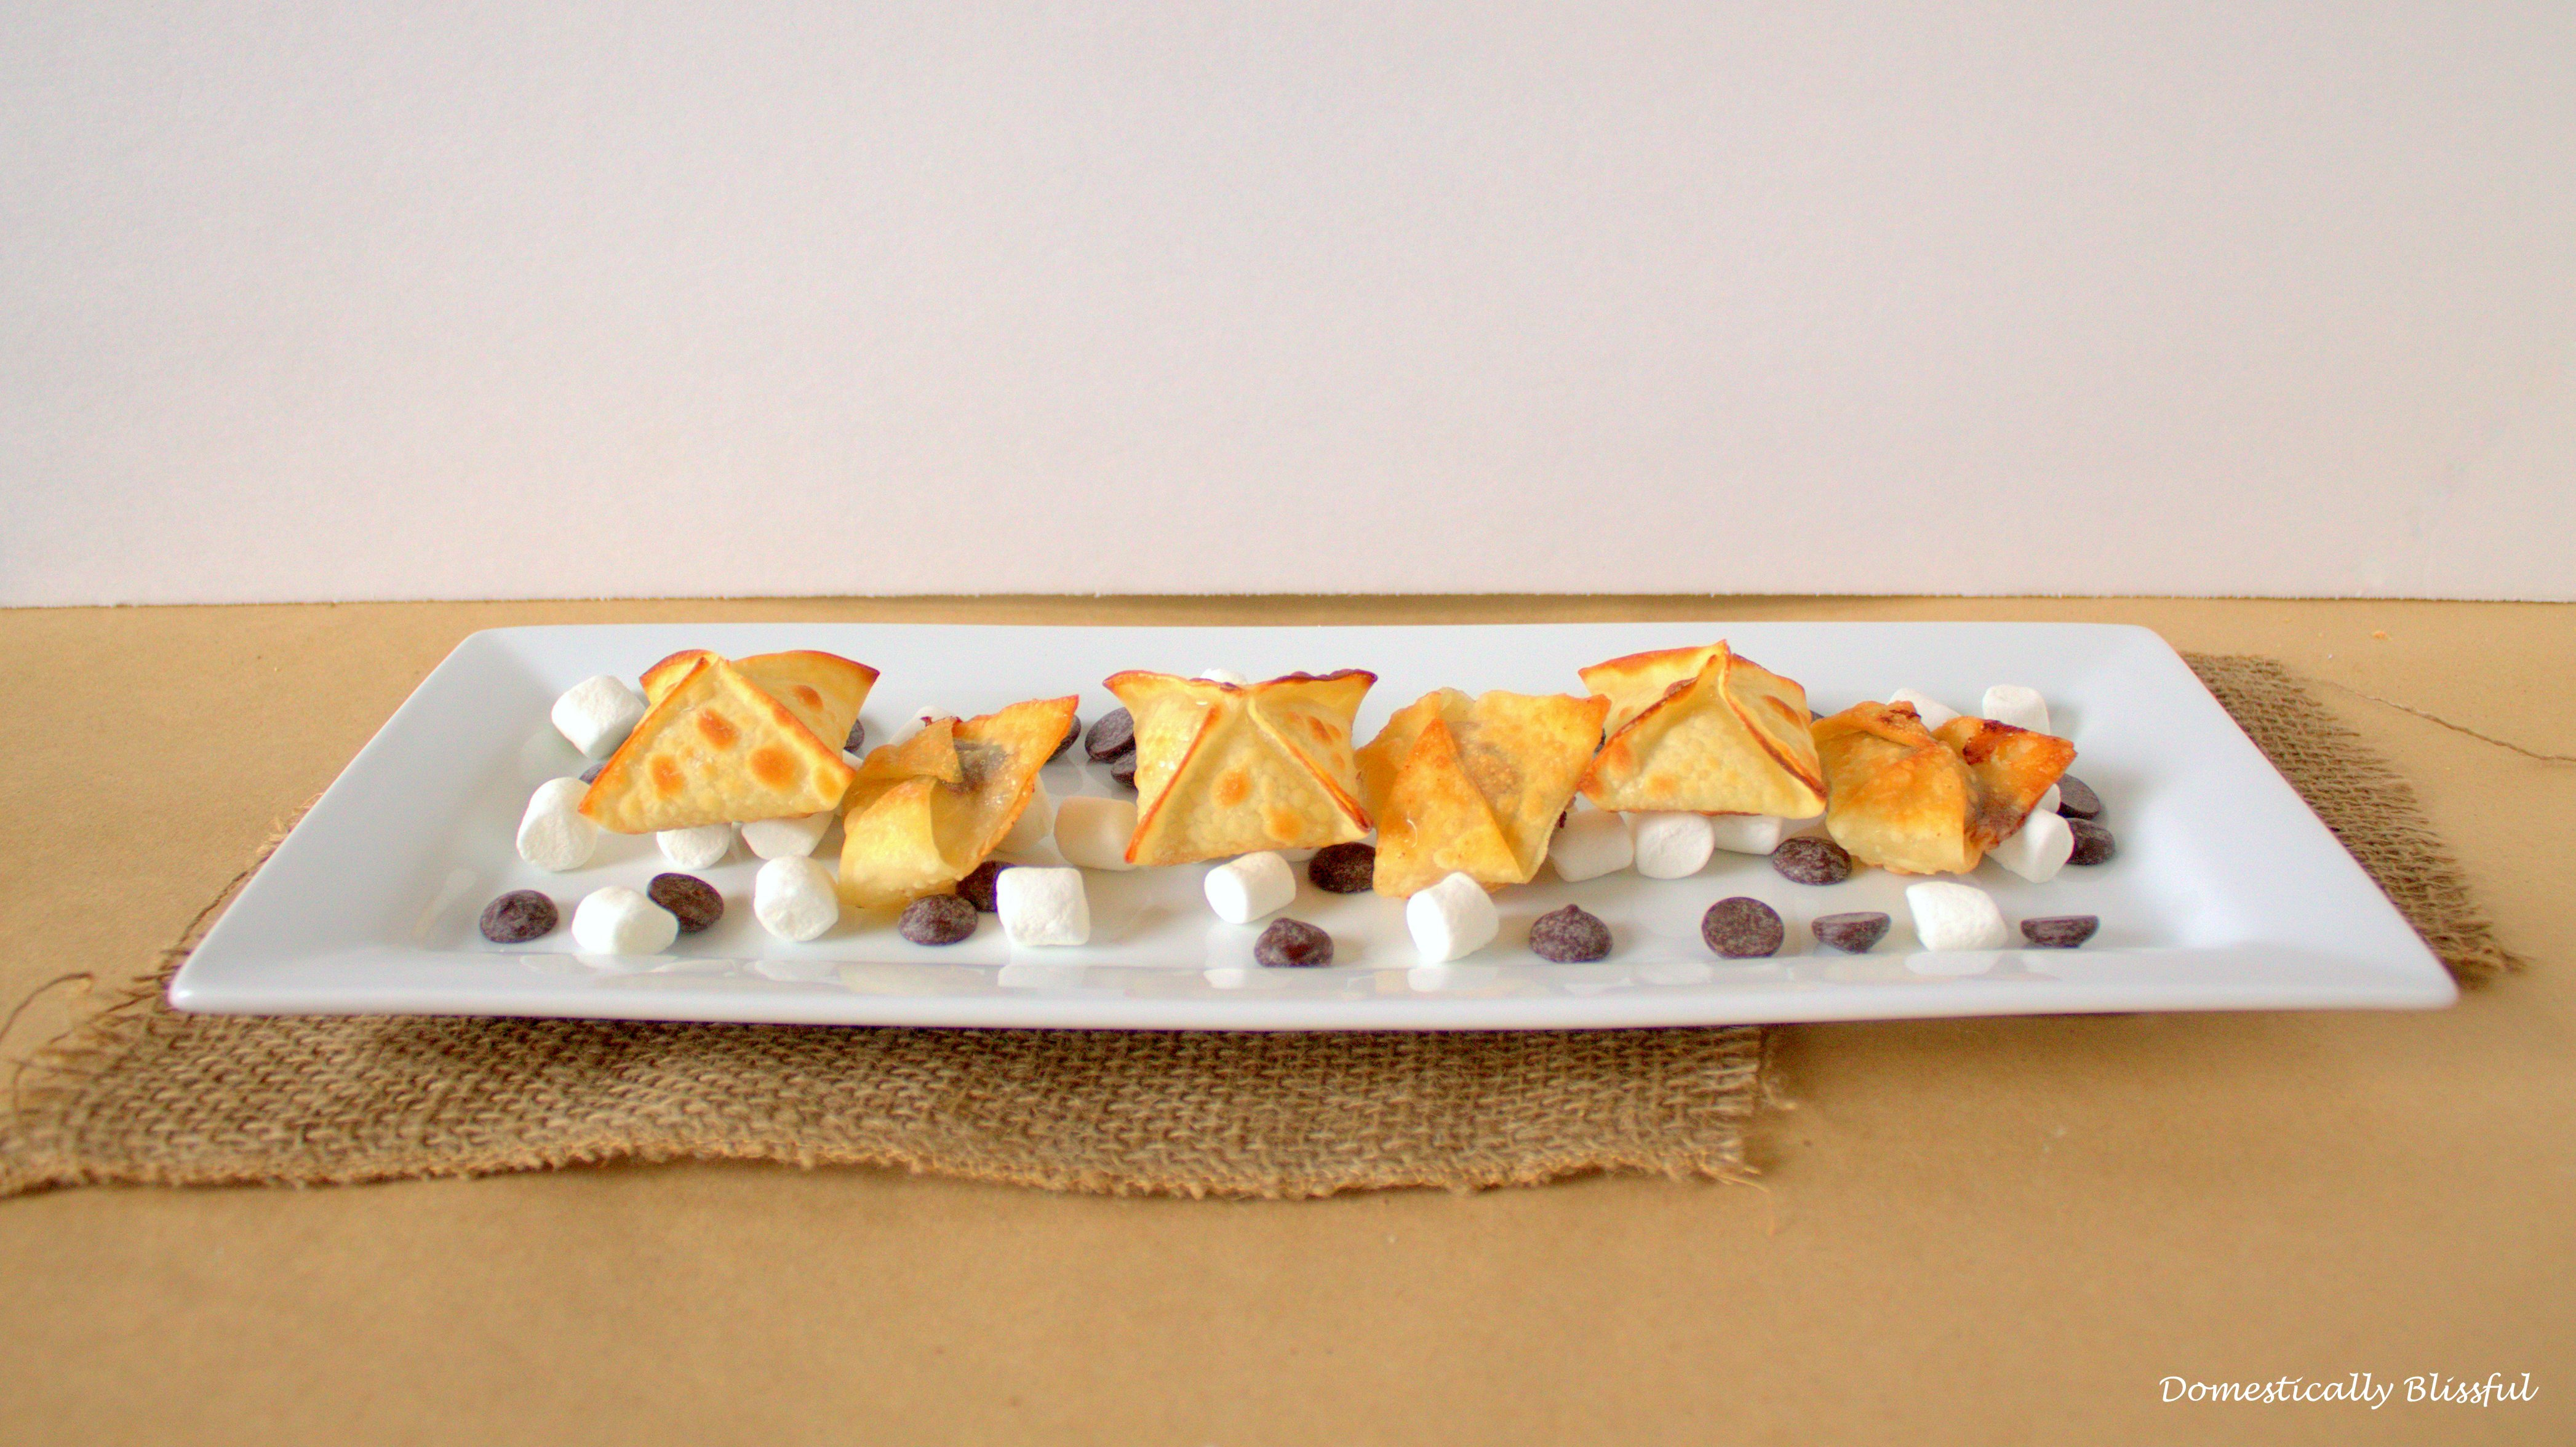 Wanton S'mores with Peanut Butter